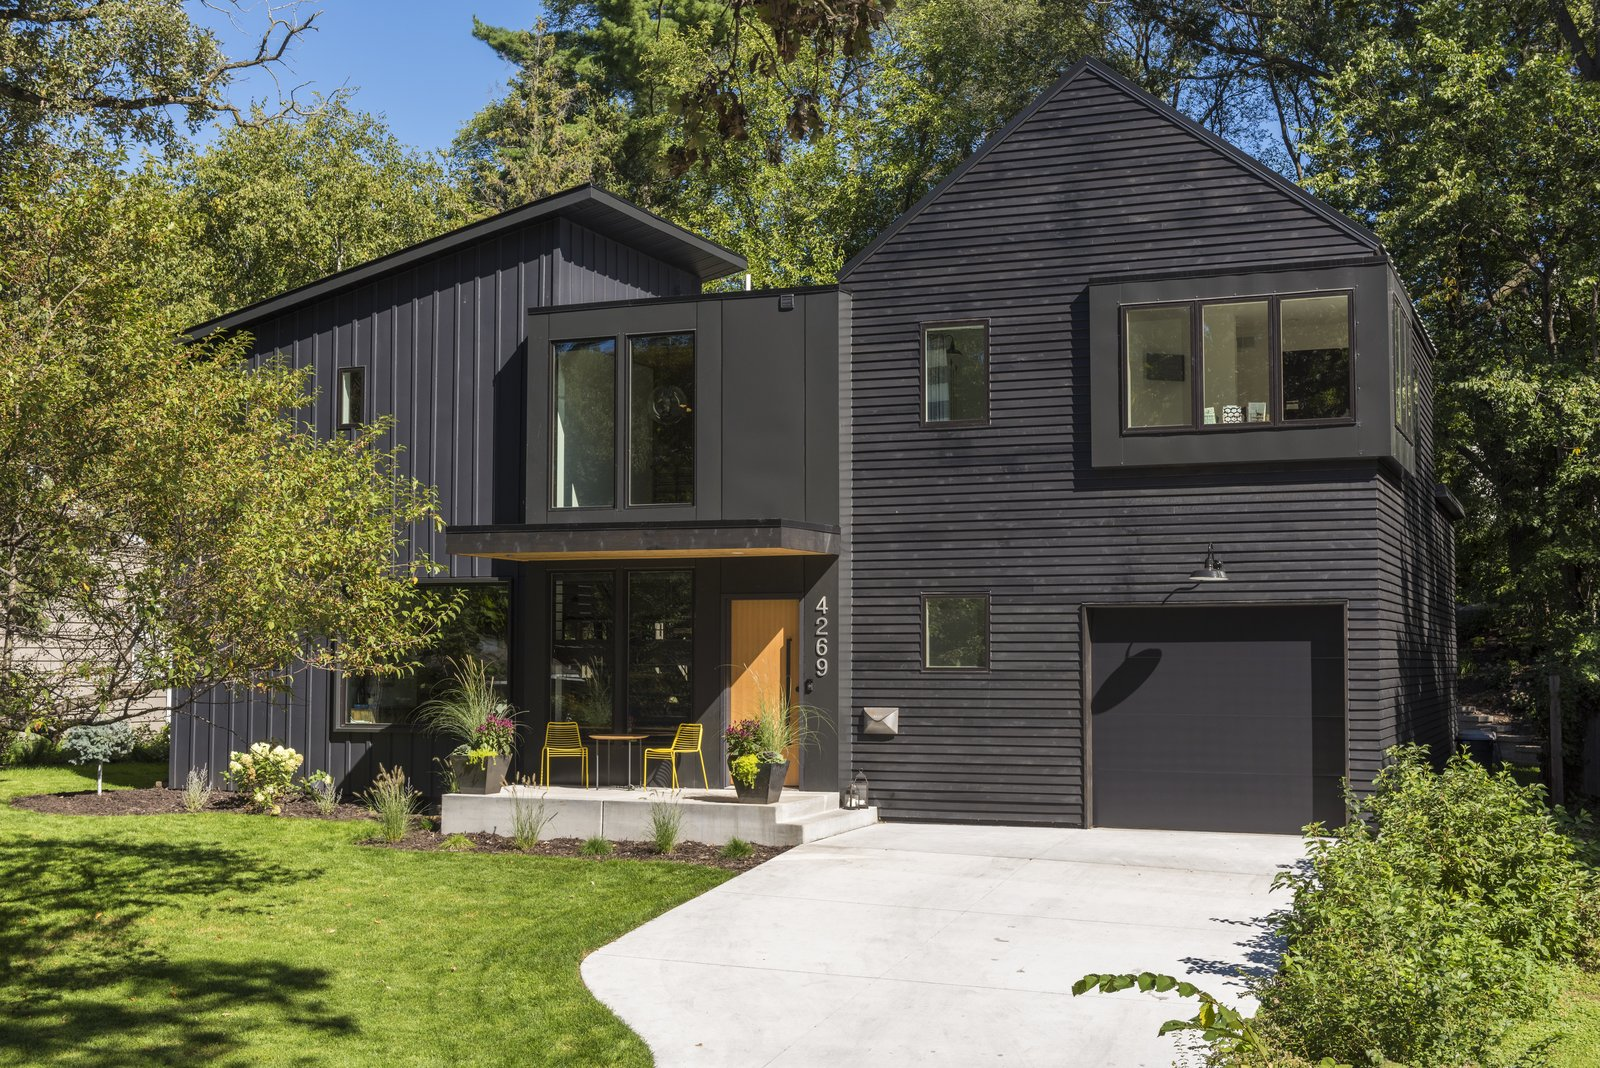 Exterior, House Building Type, Shingles Roof Material, Metal Roof Material, Wood Siding Material, Shed RoofLine, Gable RoofLine, Flat RoofLine, and Metal Siding Material  Abramson Residence